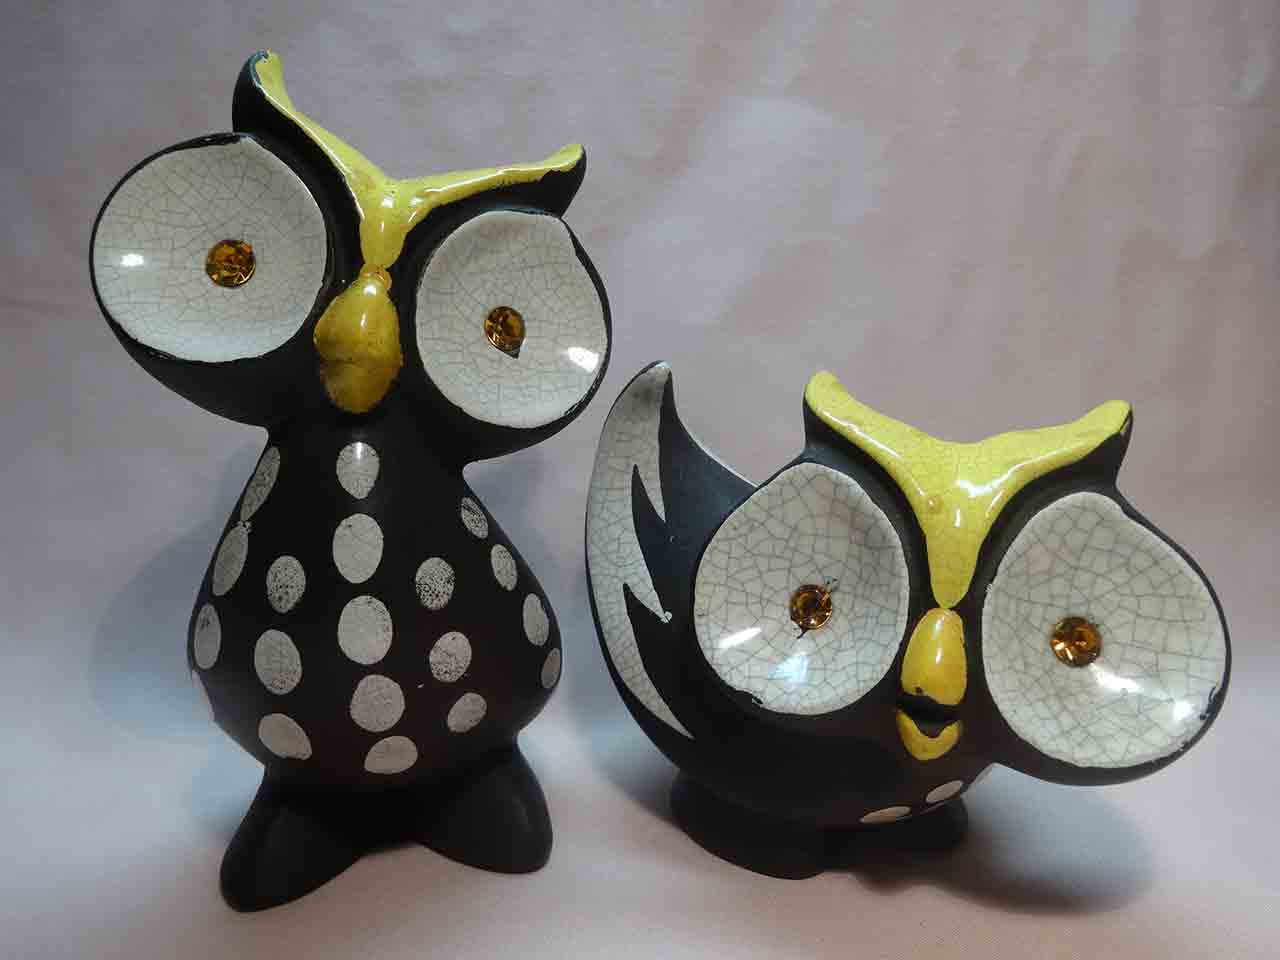 Napco owls salt and pepper shakers